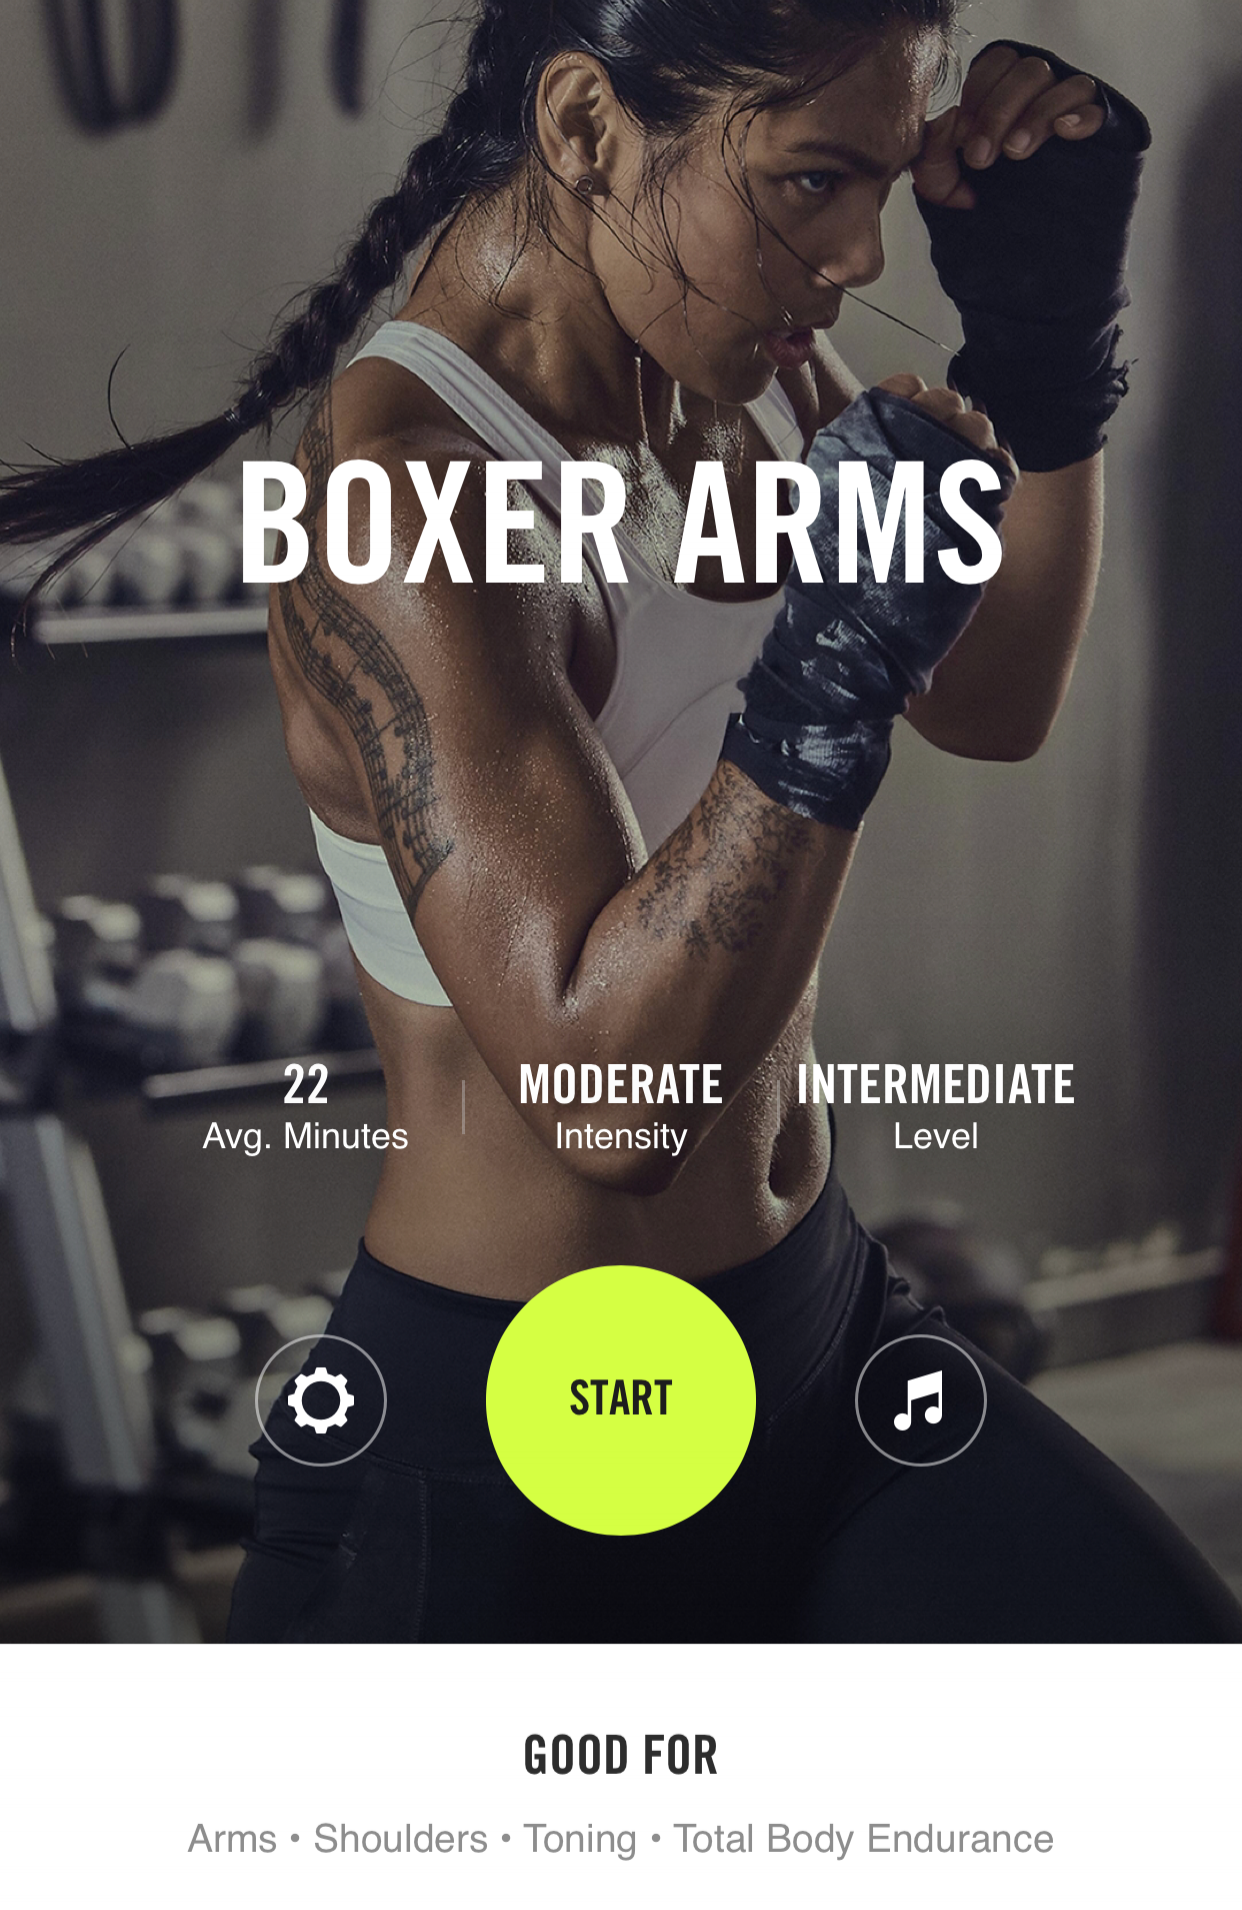 BOXER ARMS - Perfect for arms & shoulders and overall toning & endurance. 22 minutes of straight sweat that will leave you feeling like you just got out of the ring; ready for anything. This is a good one to pair with the boxer core if you are feeling ambitious that will strengthen your core + abs.